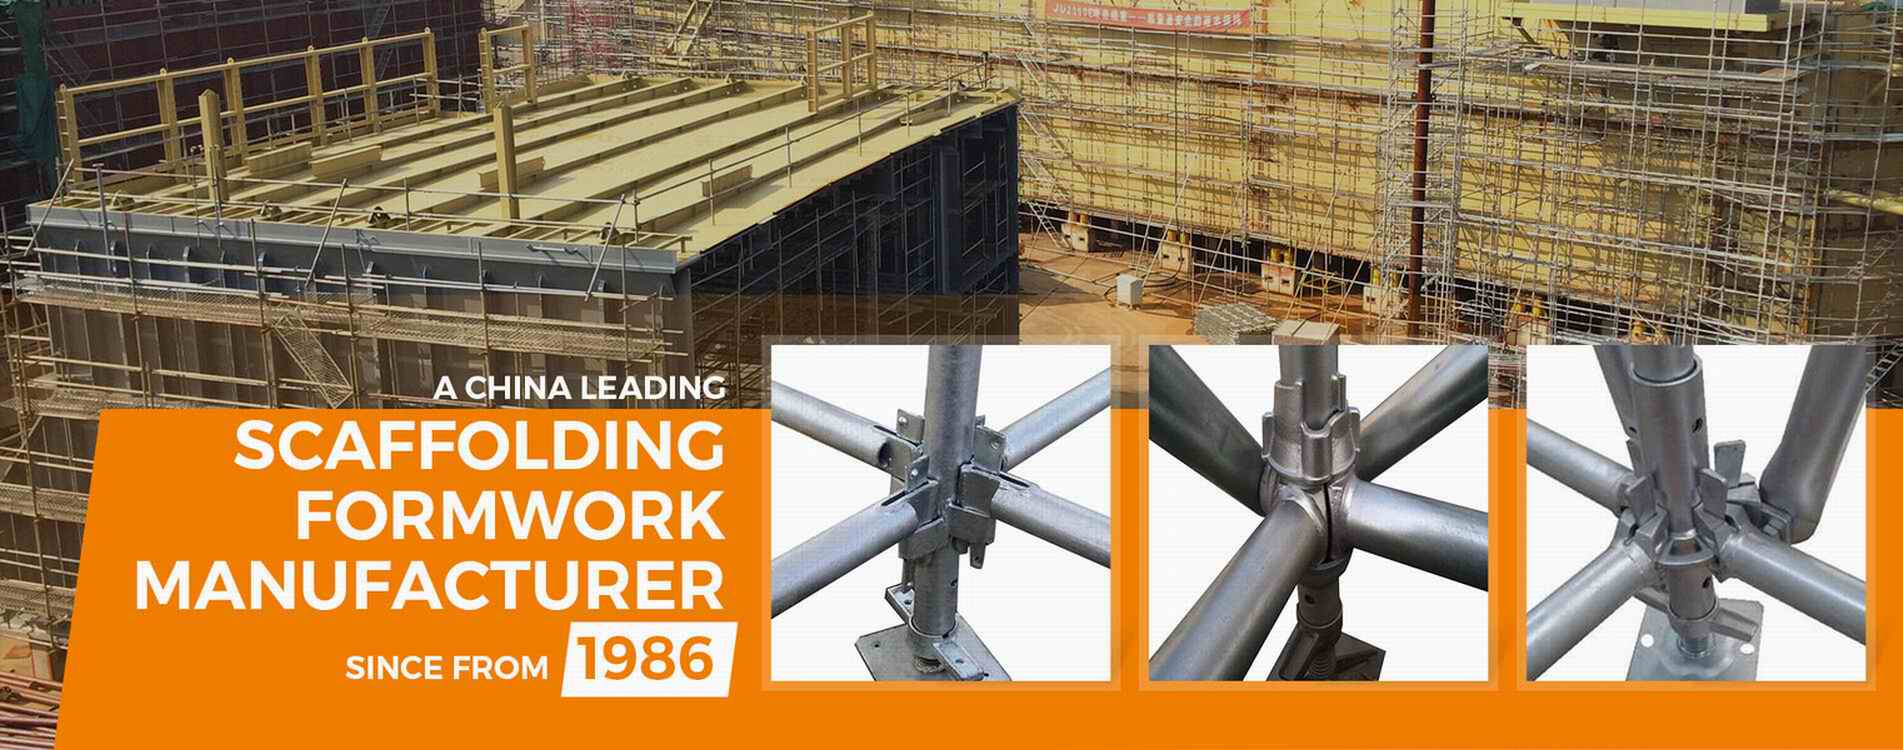 China Scaffolding Formwork Manufacturer